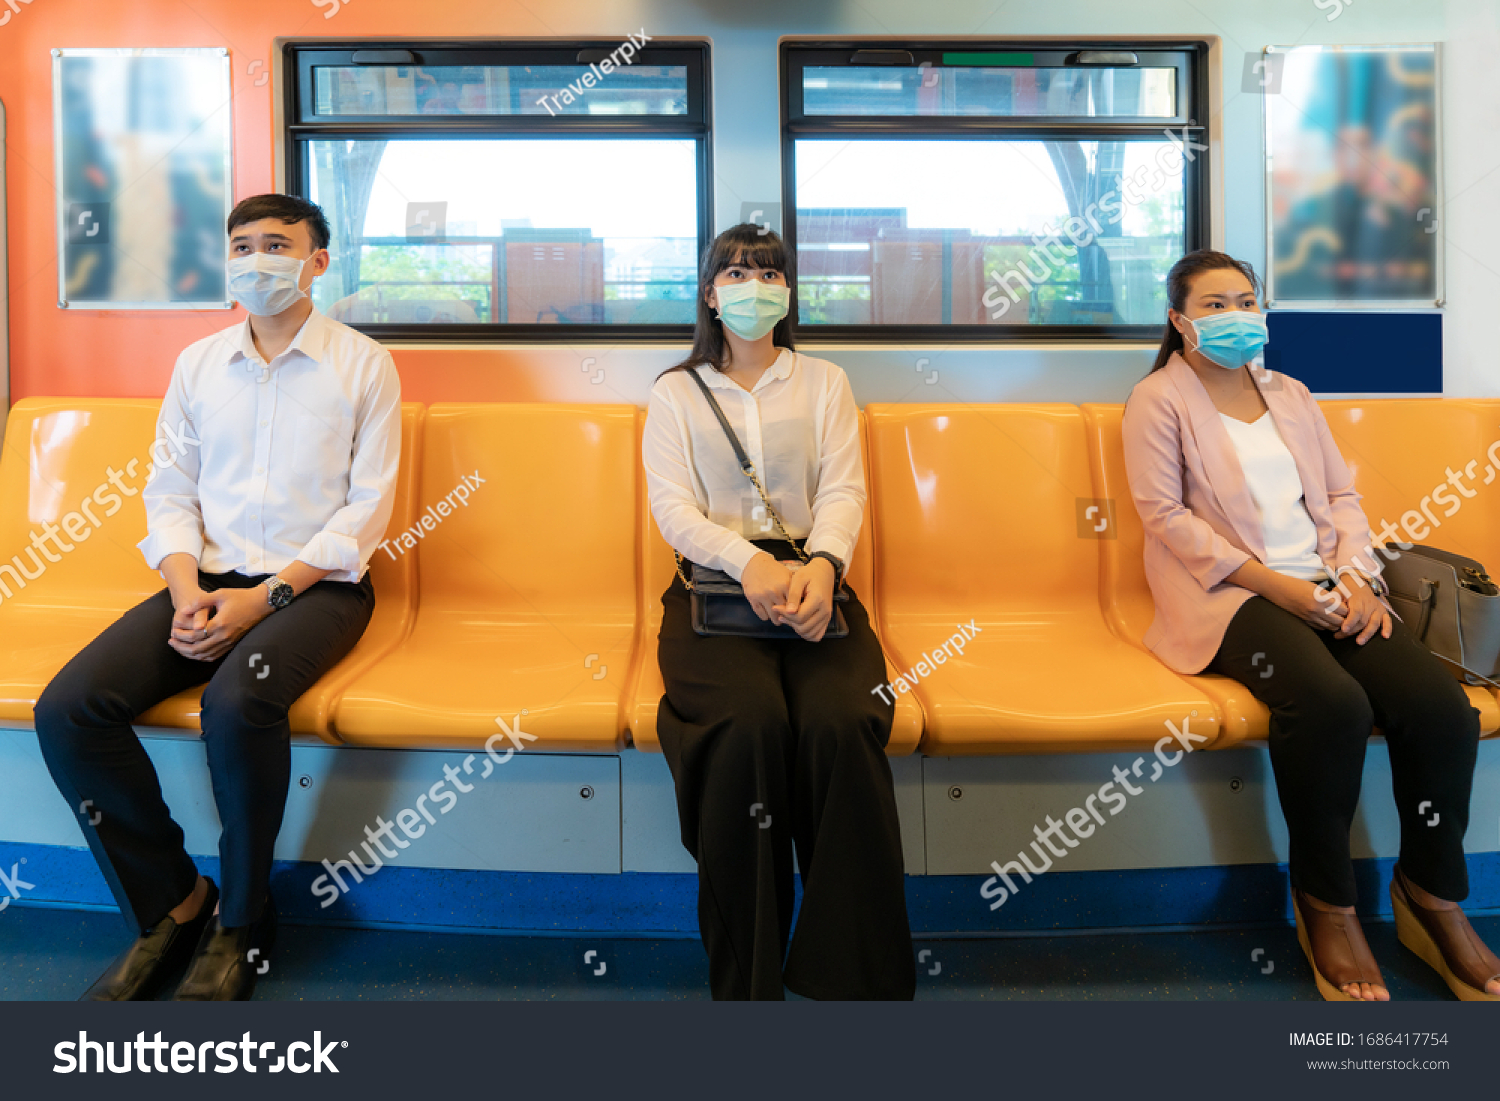 Three Asian people wearing mask sitting in subway distance for one seat from other people keep distance protect from COVID-19 viruses and people social distancing  for infection risk   #1686417754